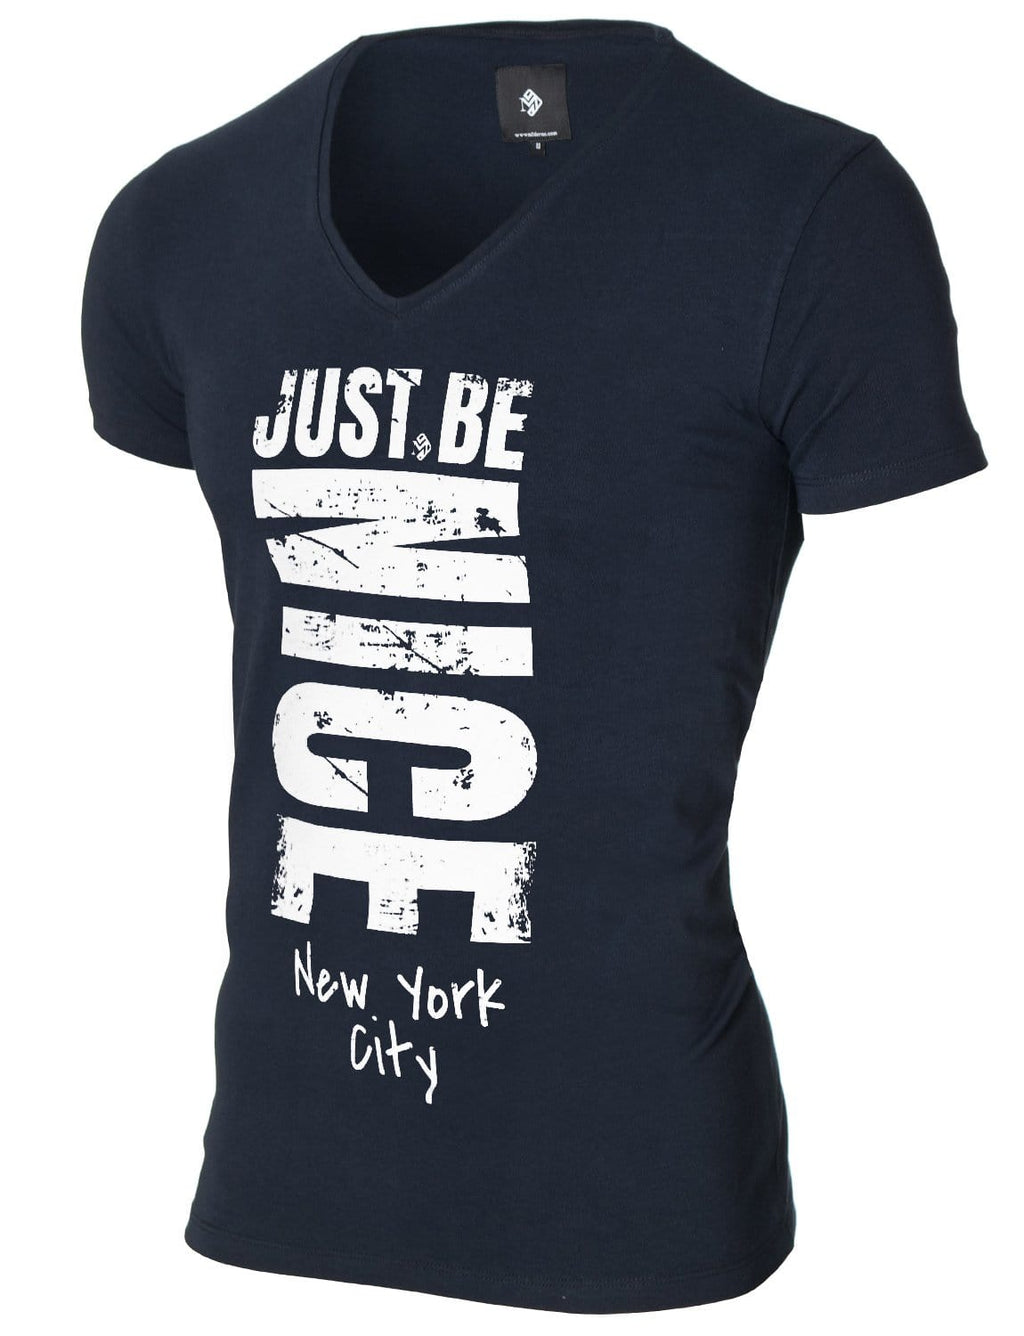 Mens Graphic Tee Slogan Print Navy (MOD2002VN)